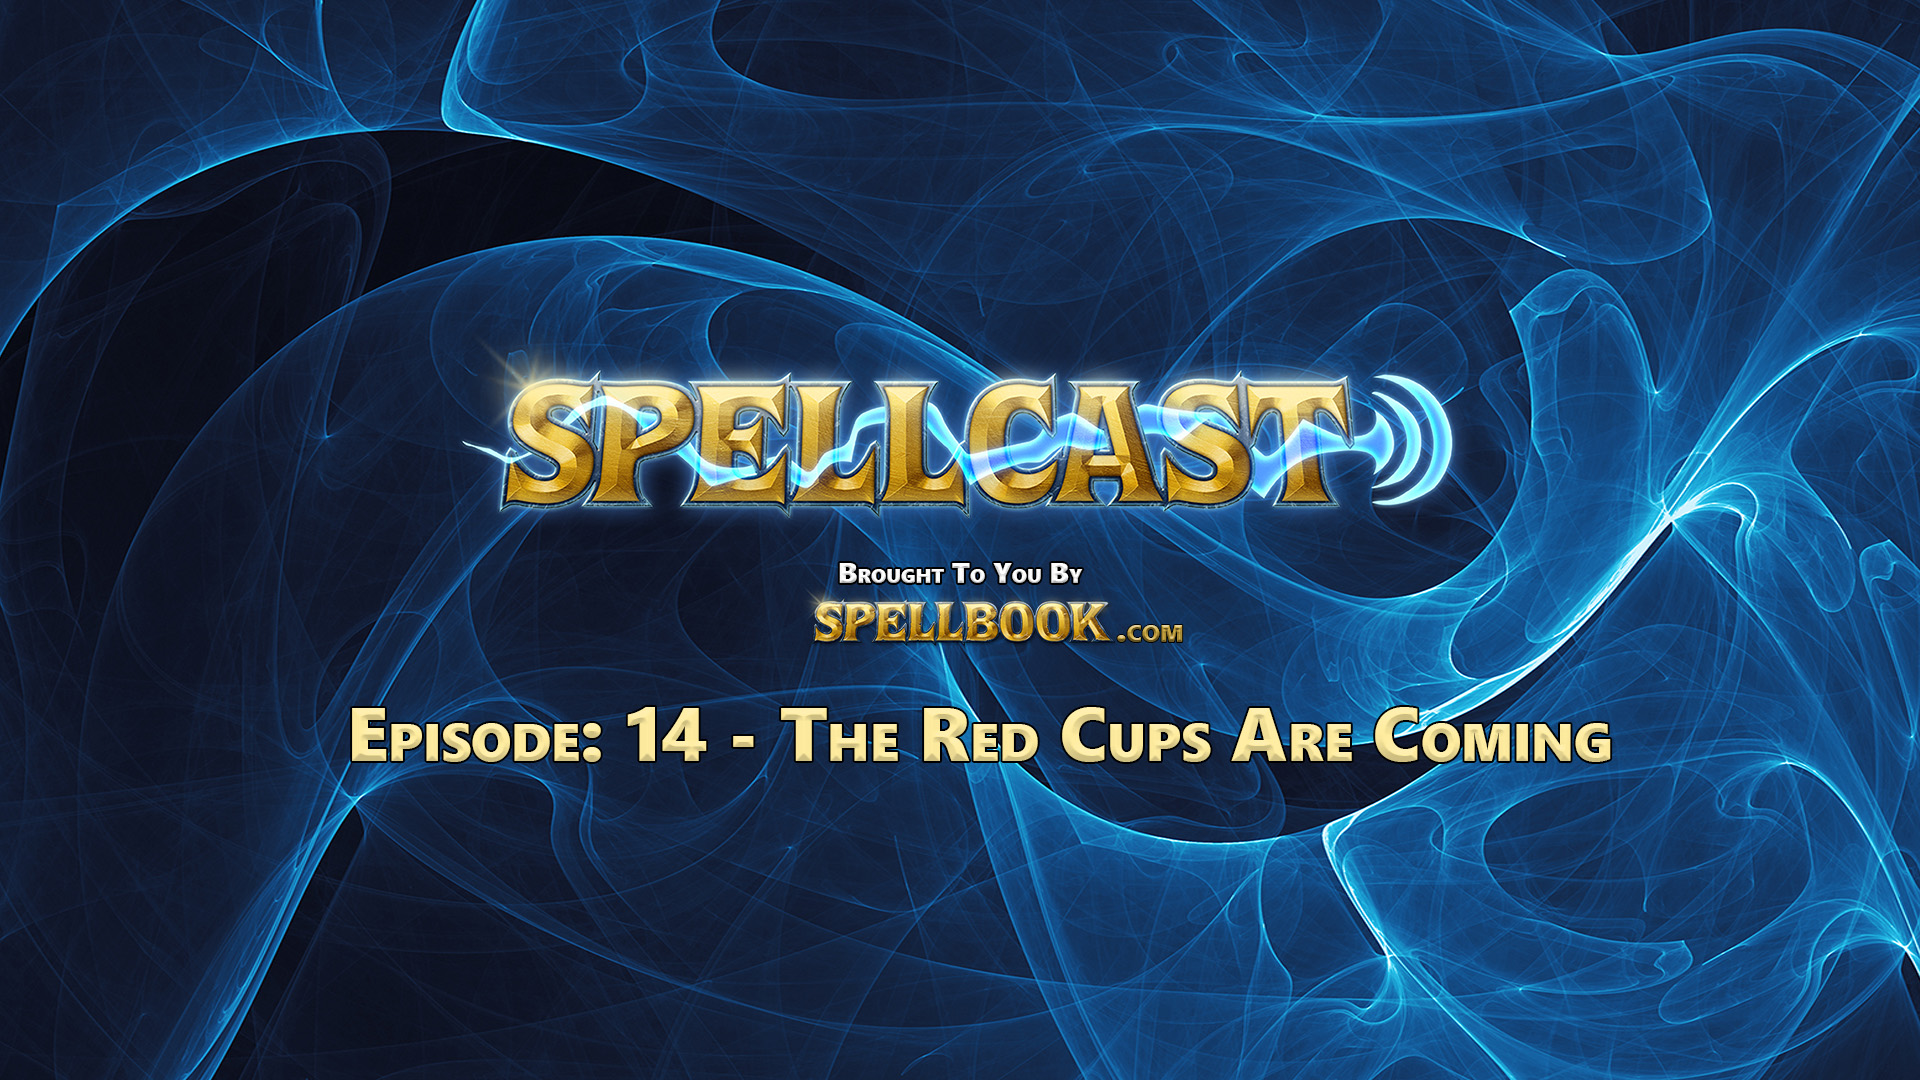 Spellcast Episode: 14 - The Red Cups Are Coming